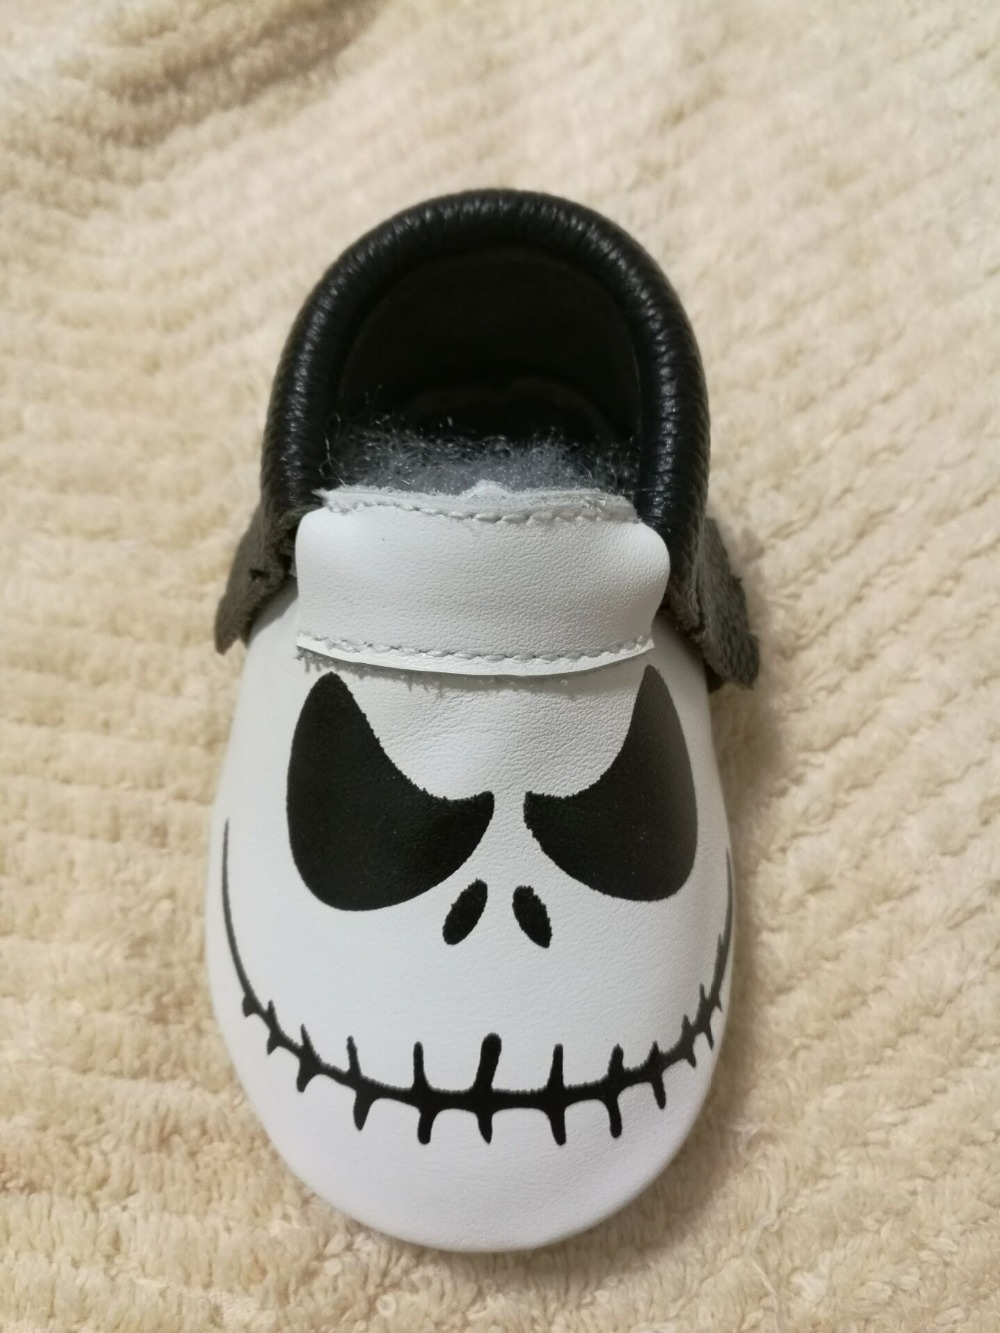 New-Stylish-Genuine-Leather-Baby-Moccasins-Shoes-Halloween-presents-for-bebe-Baby-Shoes-Newborn-first-walker-toddler-Shoes-2